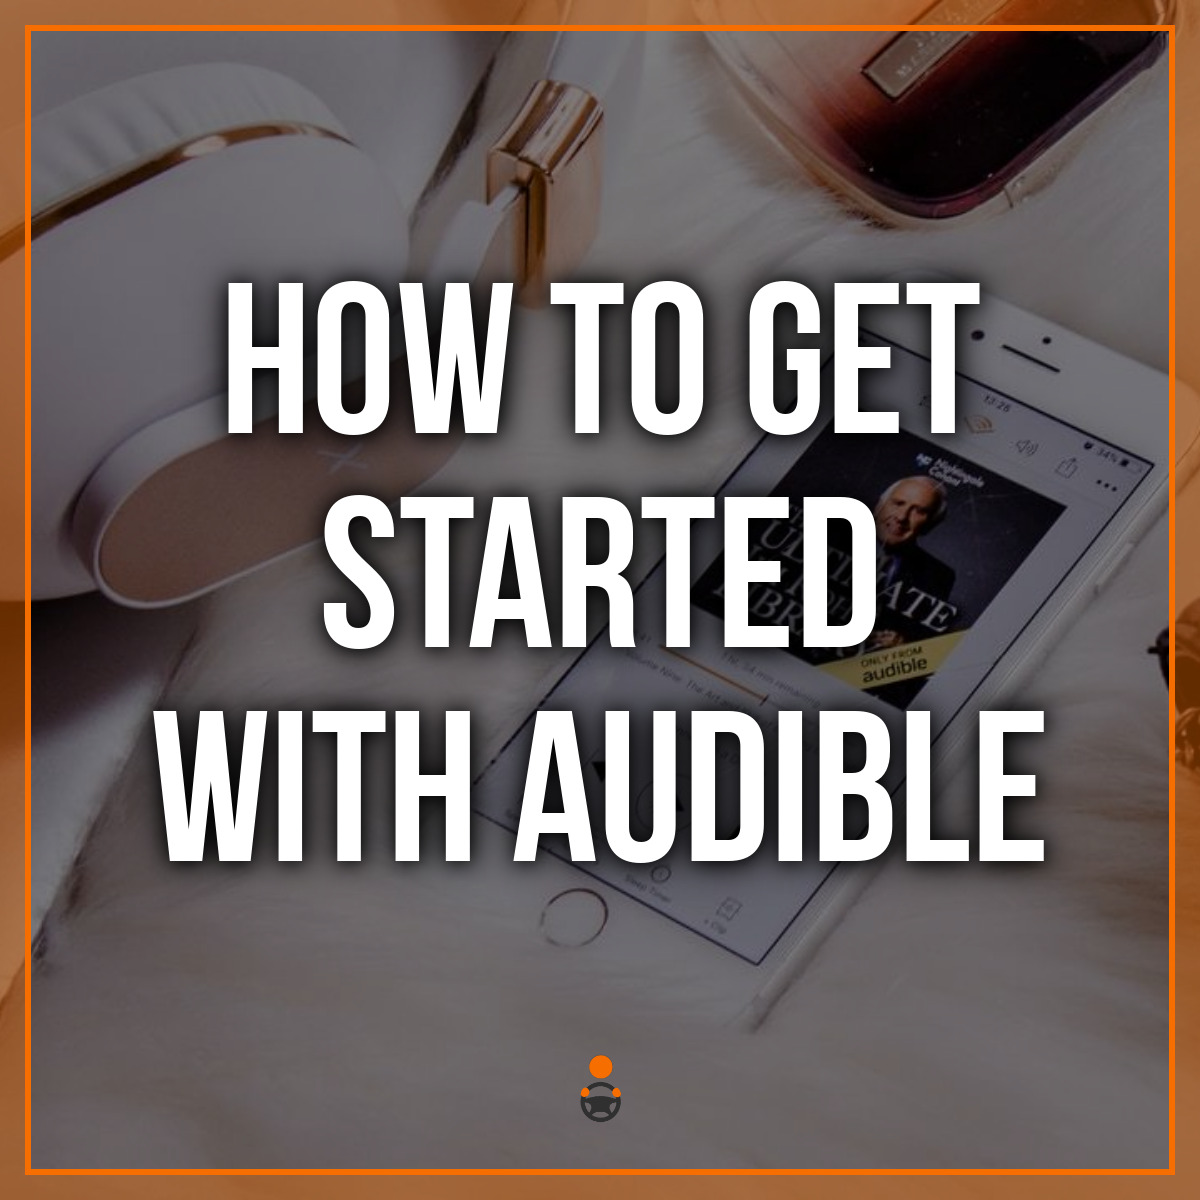 How to Get Started With Audible